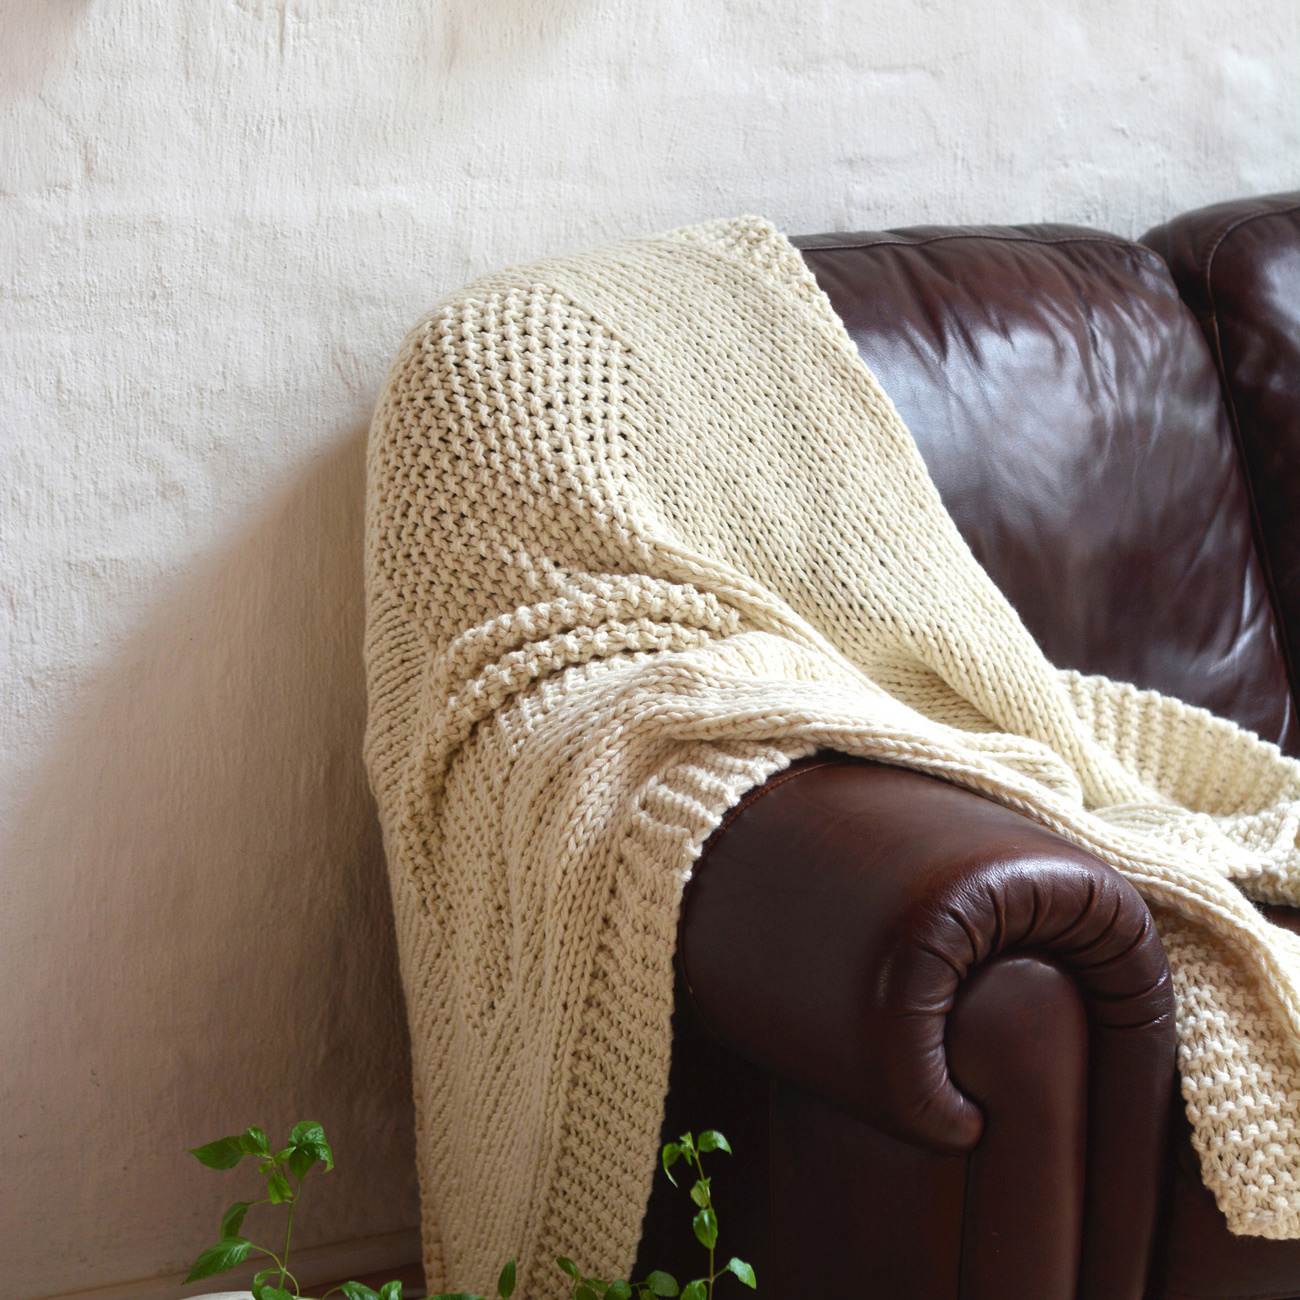 Handmade with 100% pure Merino Wool from the heart of the Karoo.